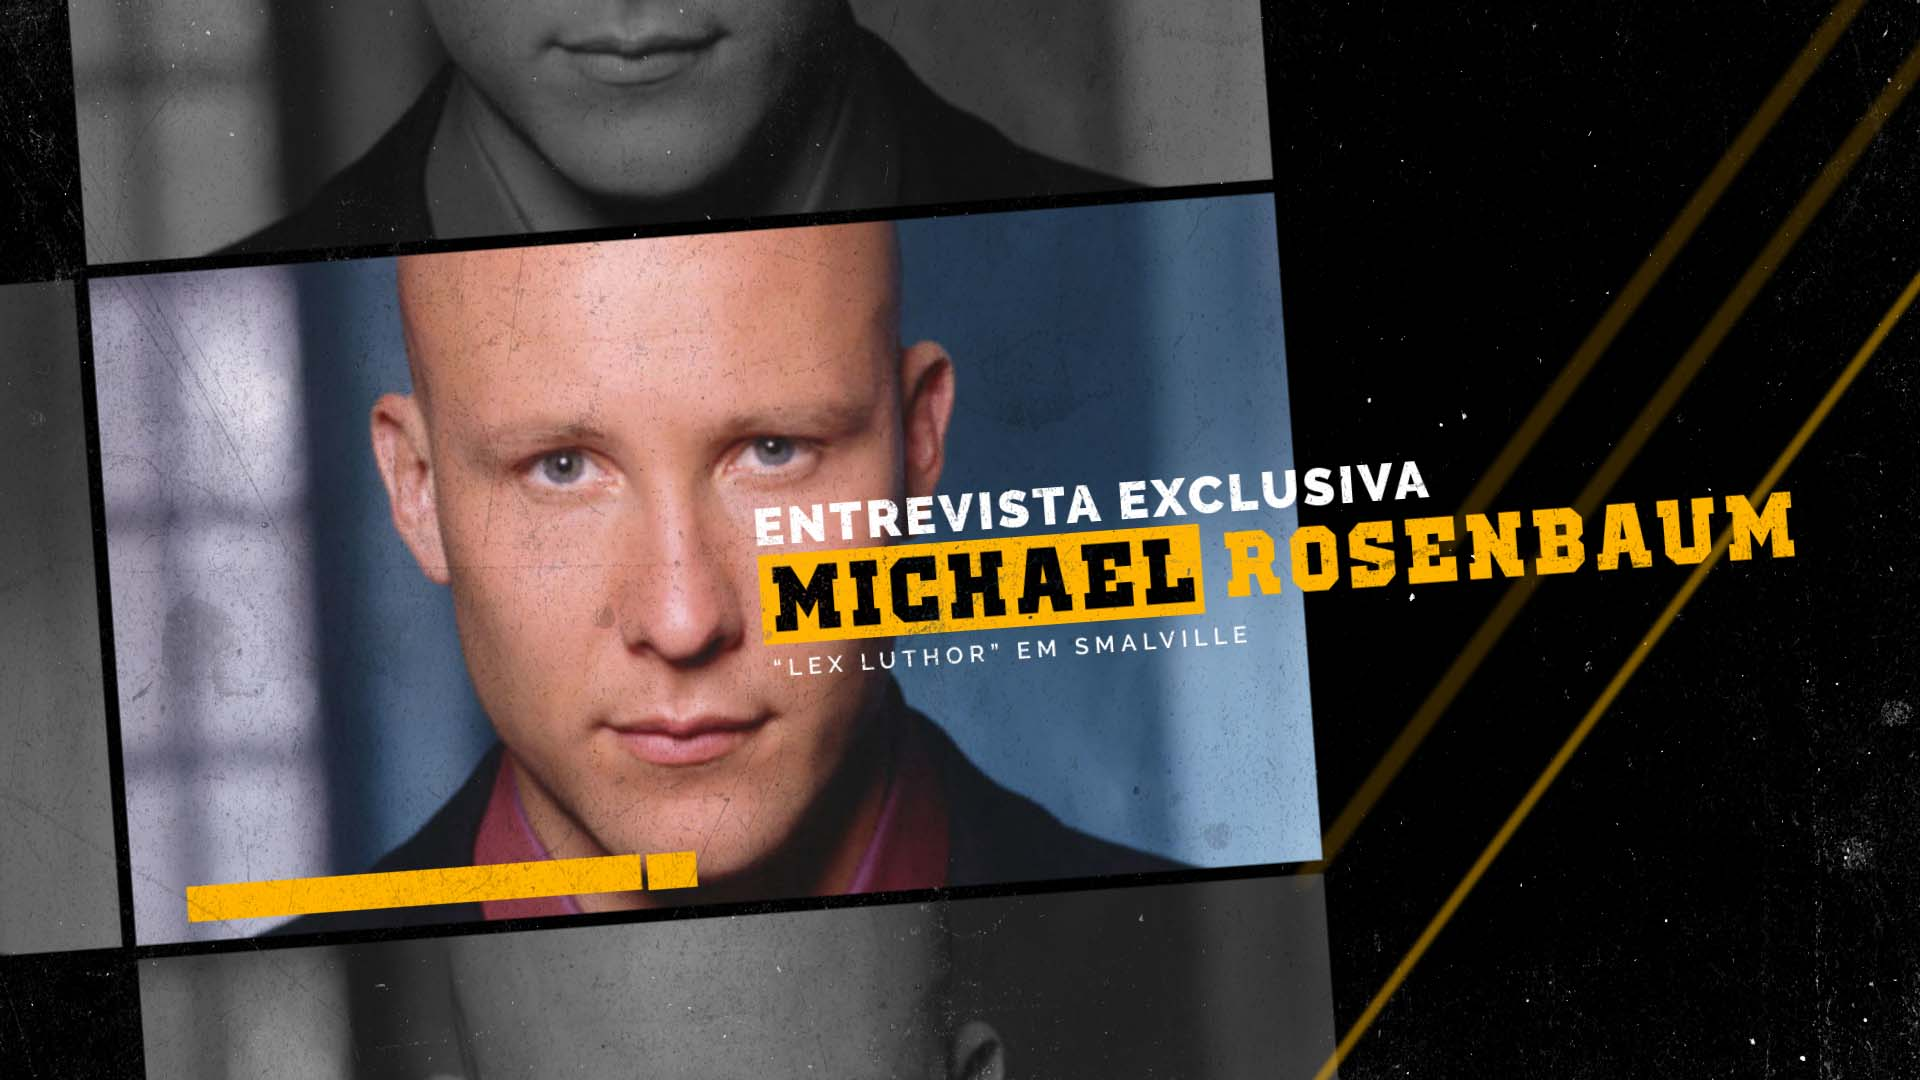 https://cinemaplanet.pt/wp-content/uploads/2018/02/lets-talk-michael-rosenbaum.jpg